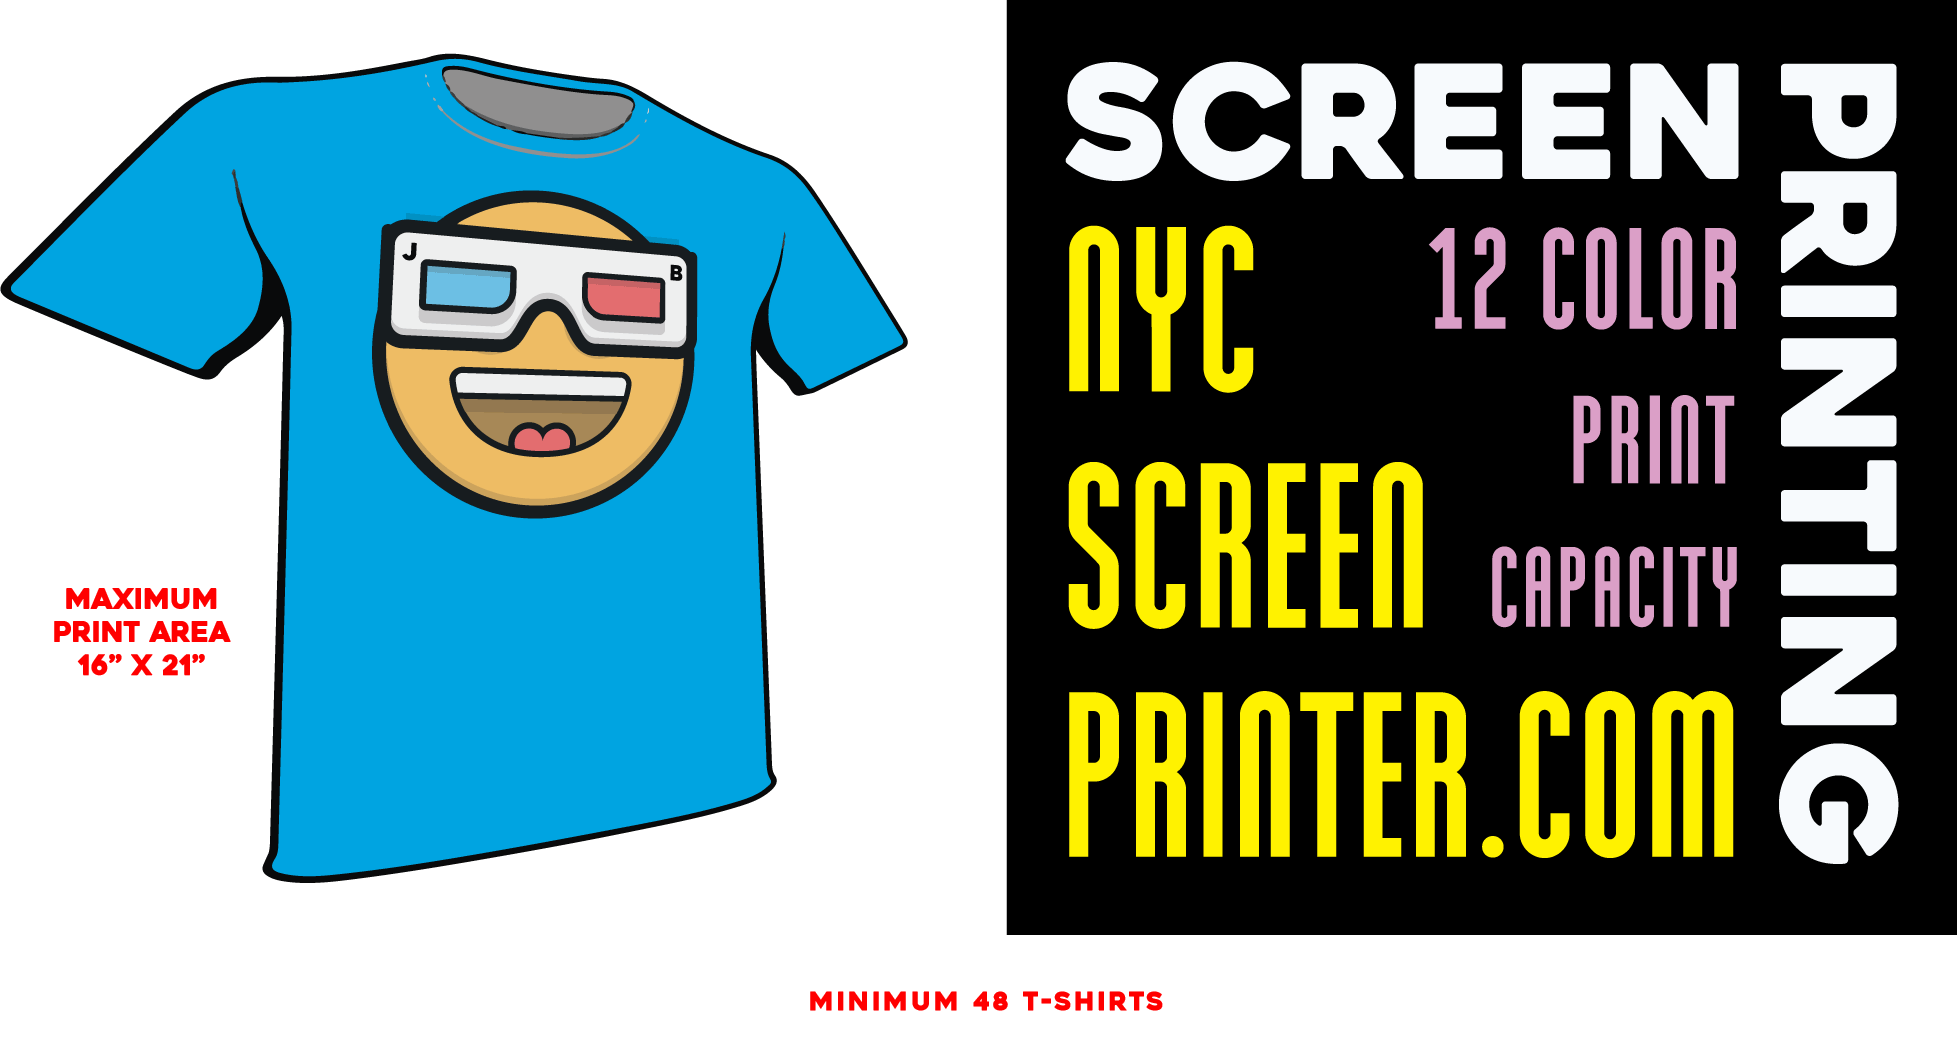 Nyc Screen Printing Embroidery